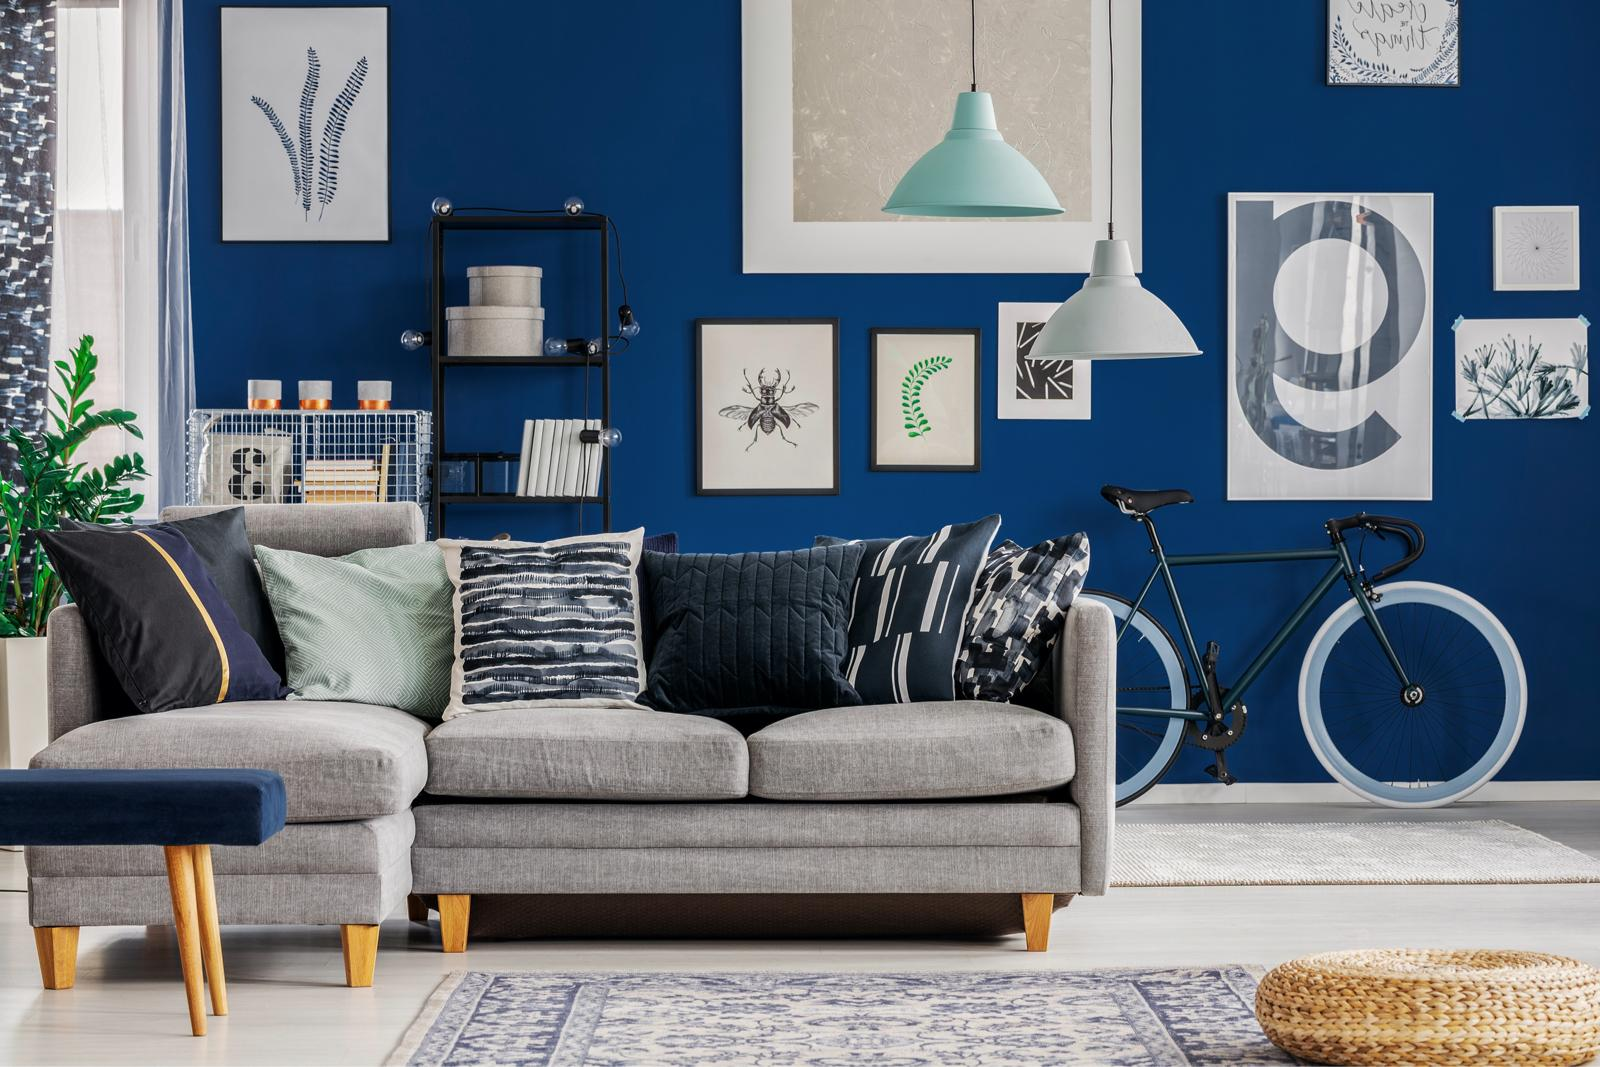 Maximalism Style And Why We Love It 21, Paneling Factory Of Virginia